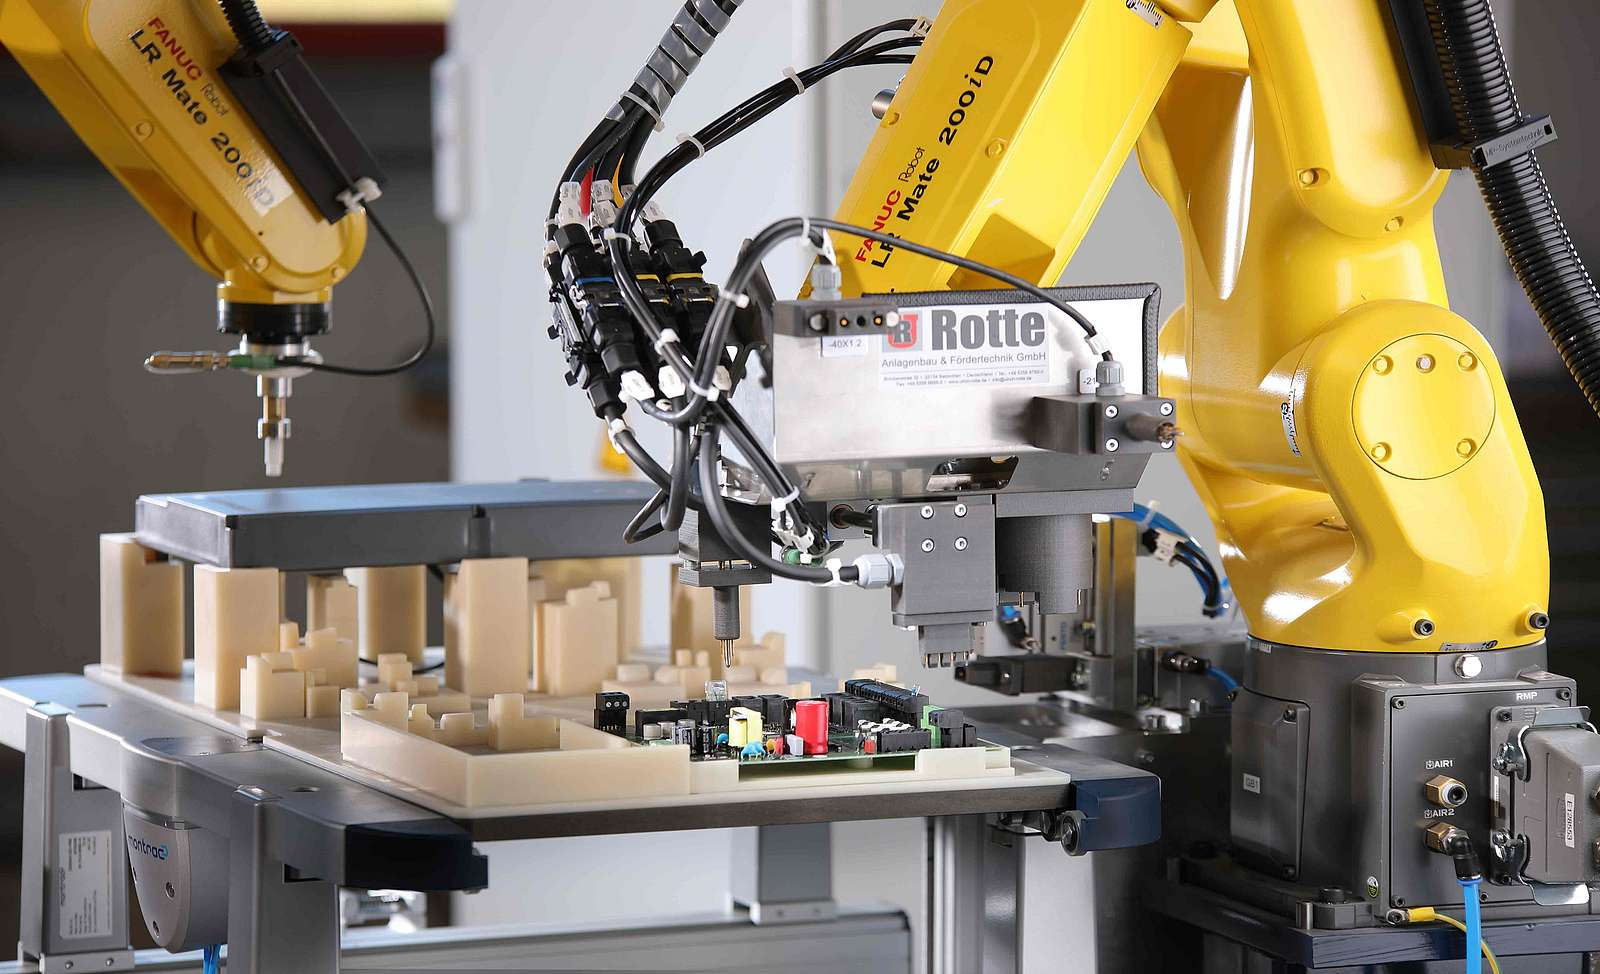 Automated testing with touch finger and force measurement on industrial robots